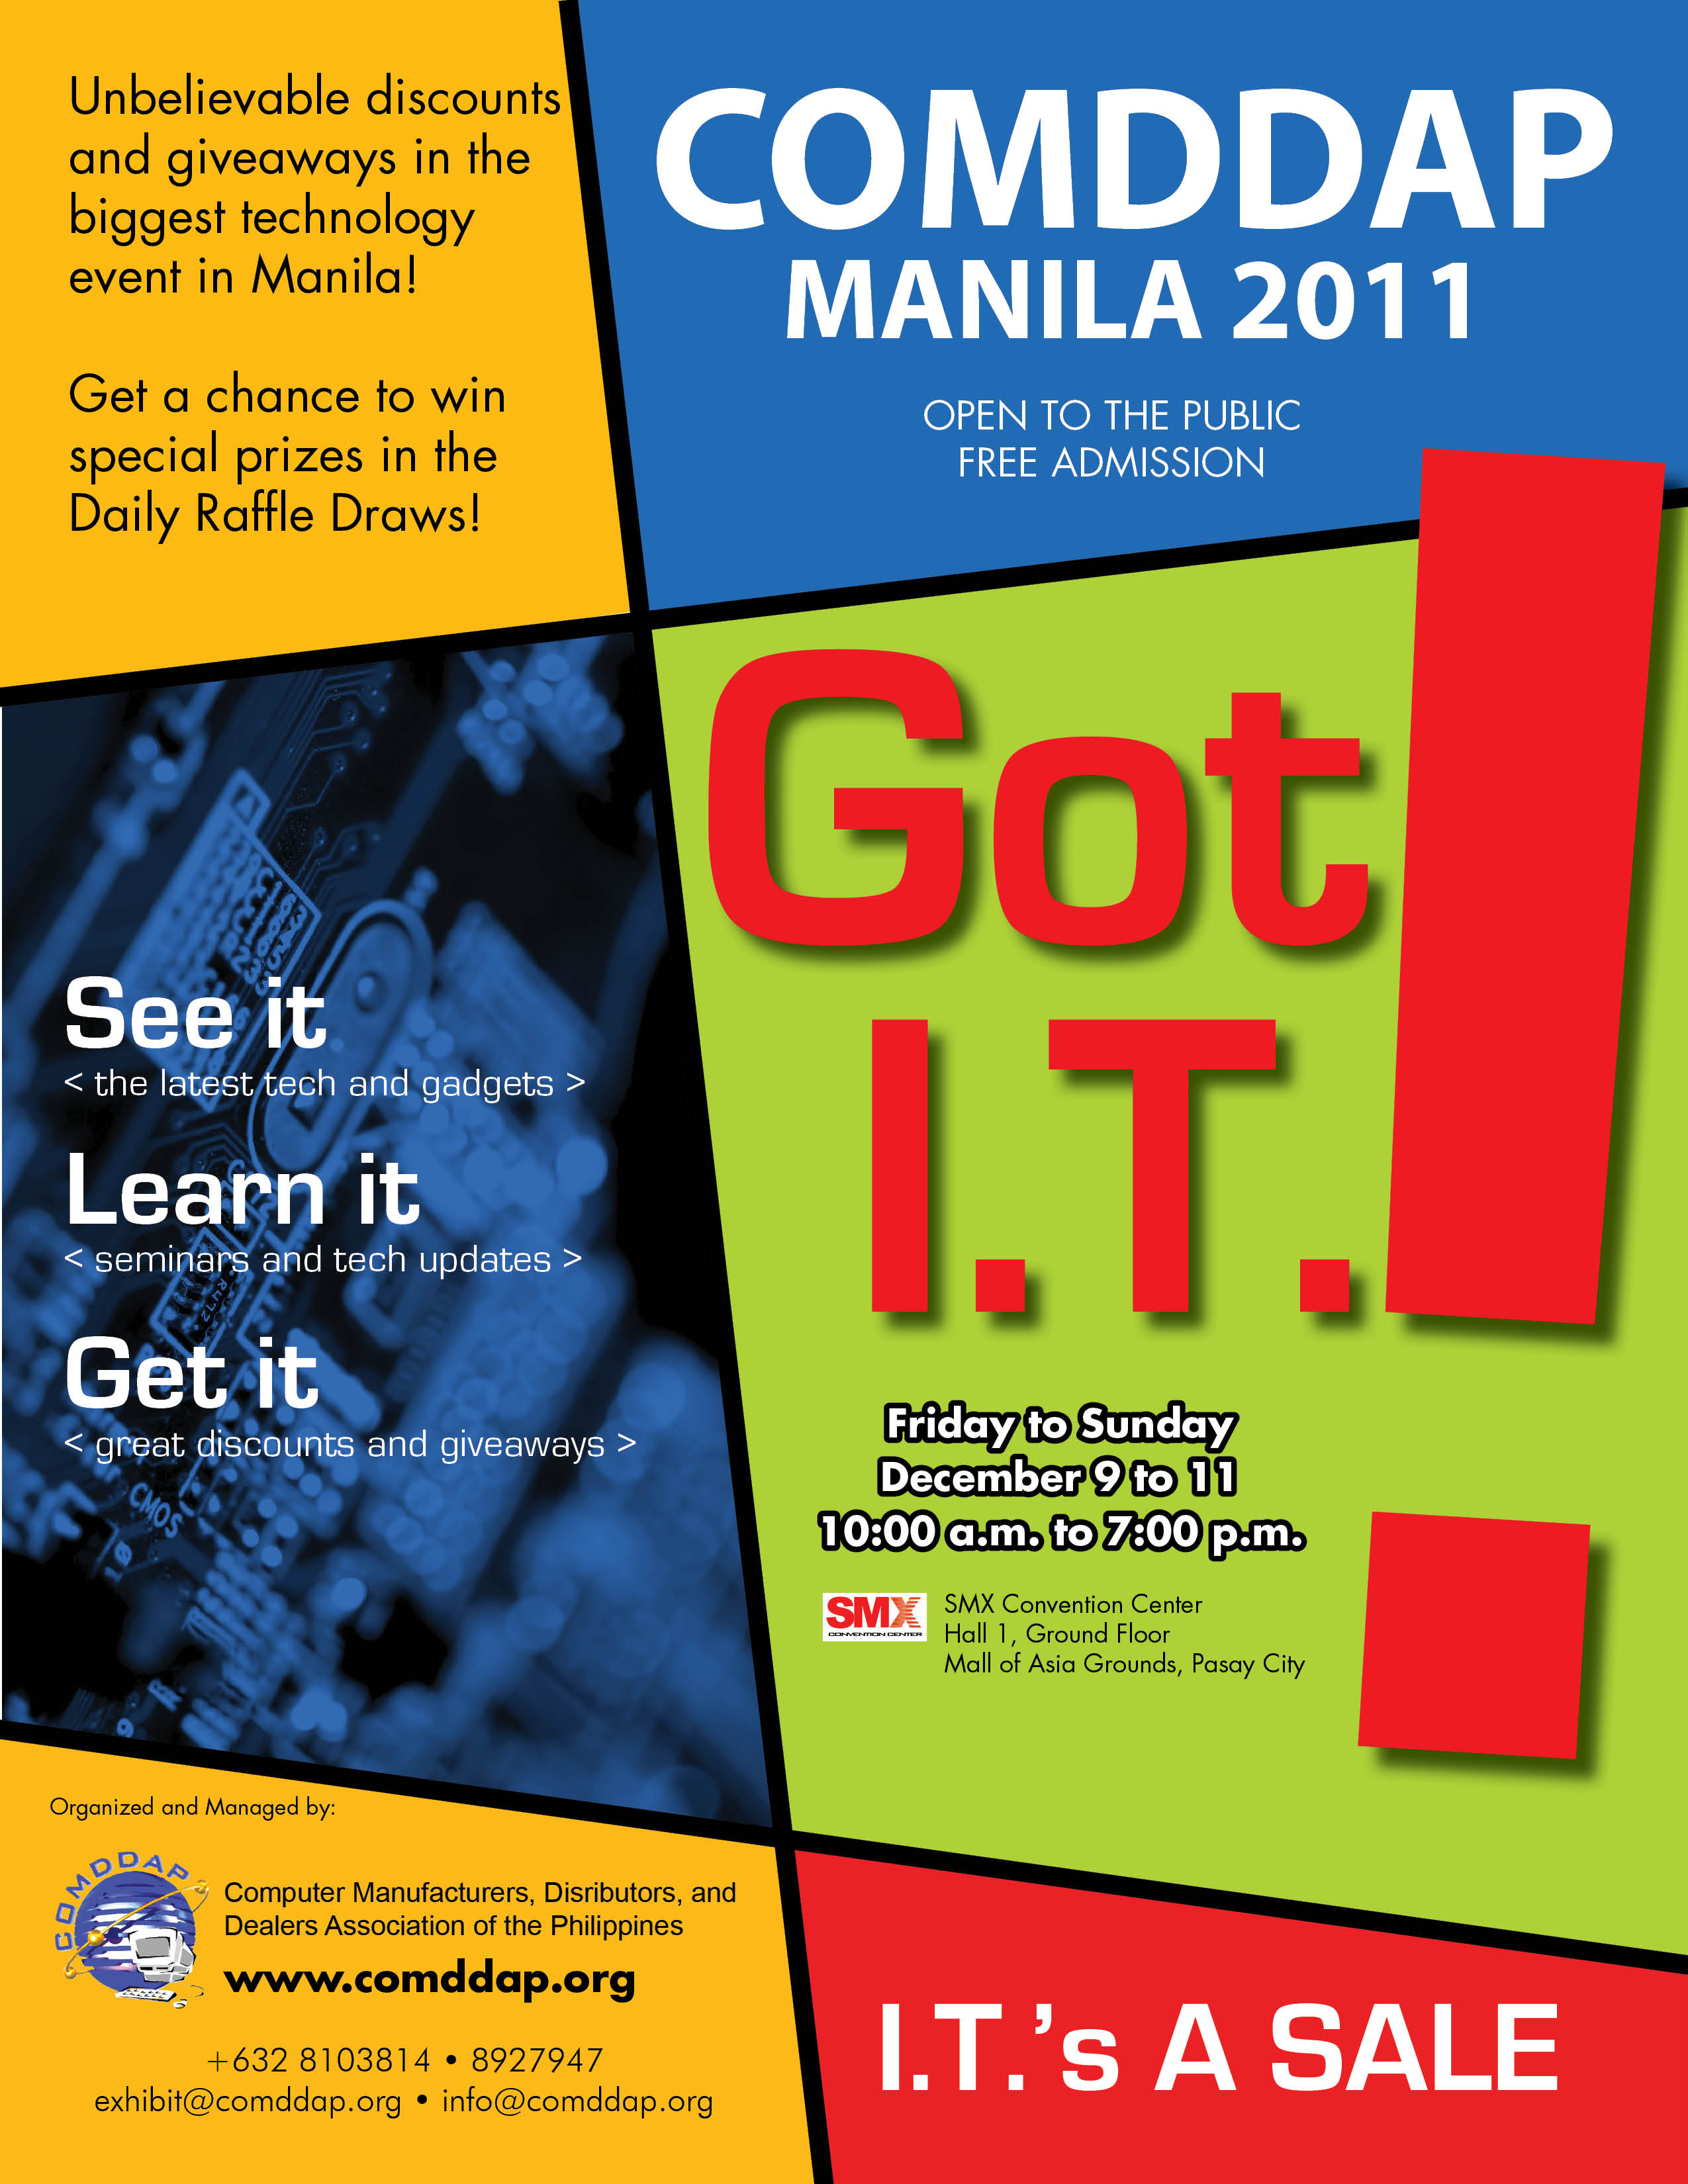 Click the image to have a larger view of the 28th COMDDAP Manila 2011's poster.